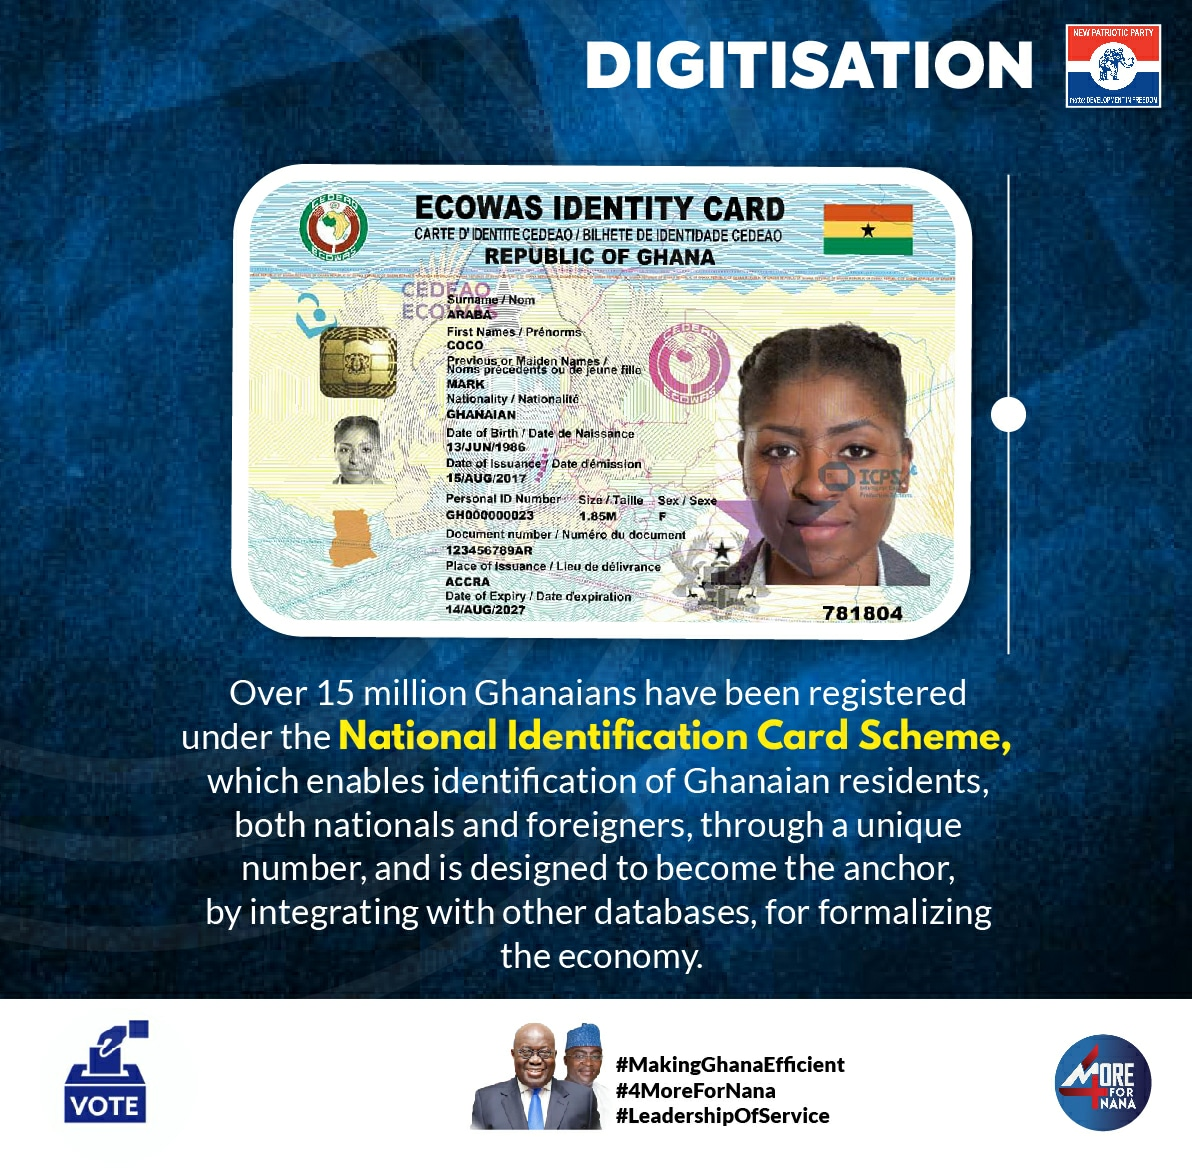 15 million residents in Ghana, both nationals and foreigners, can now be identified through a unique number under the National Identification Card scheme, implemented successfully under the NPP Government. #MakingGhanaEfficient #4MoreForNana https://t.co/F8wykhzjlf